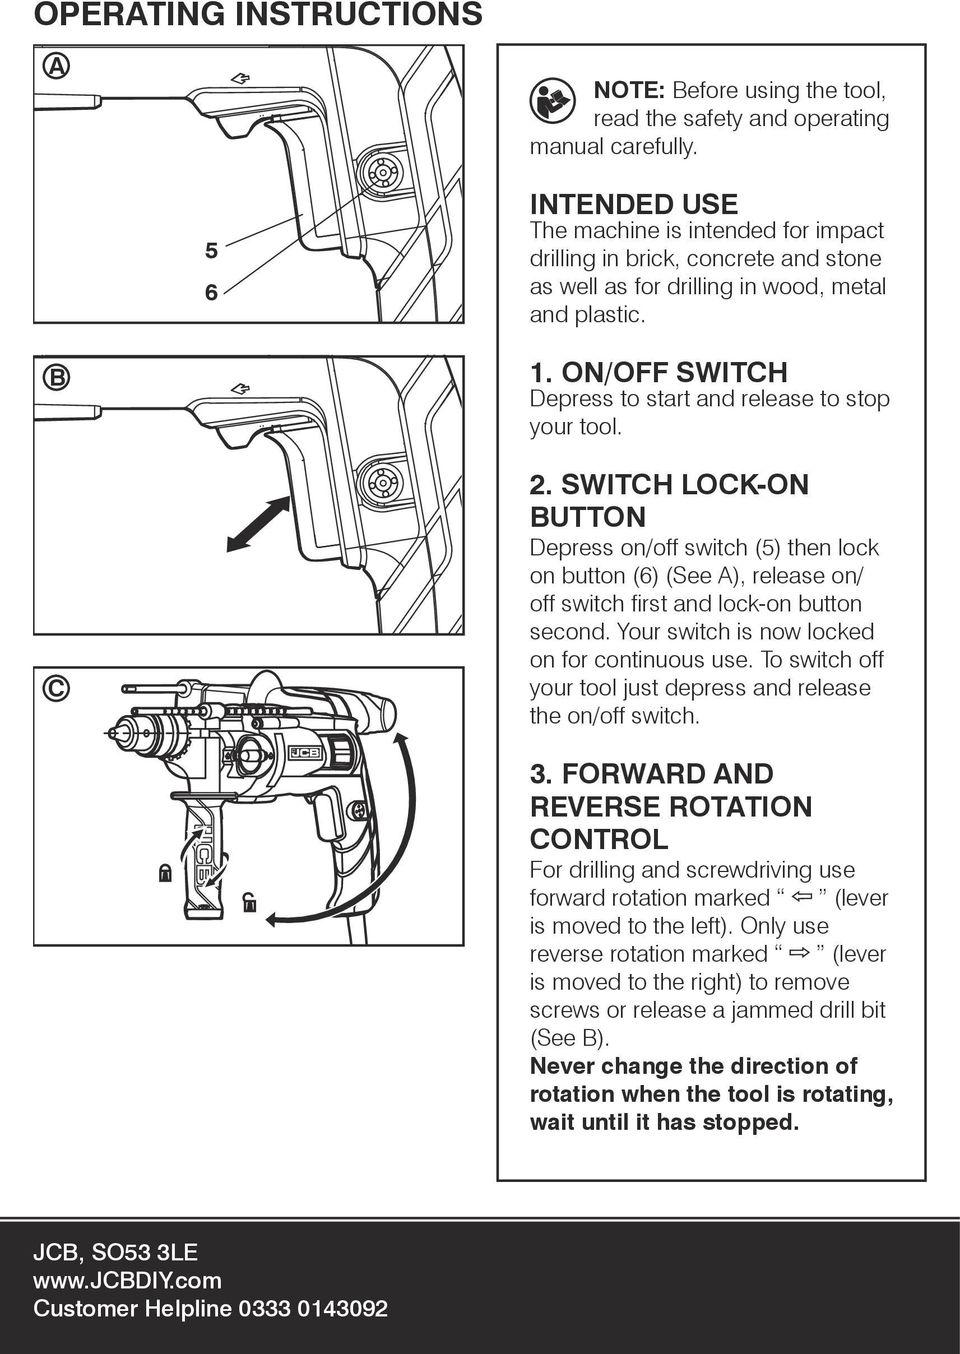 ON/OFF SWITCH Depress to start and release to stop your tool. 2.